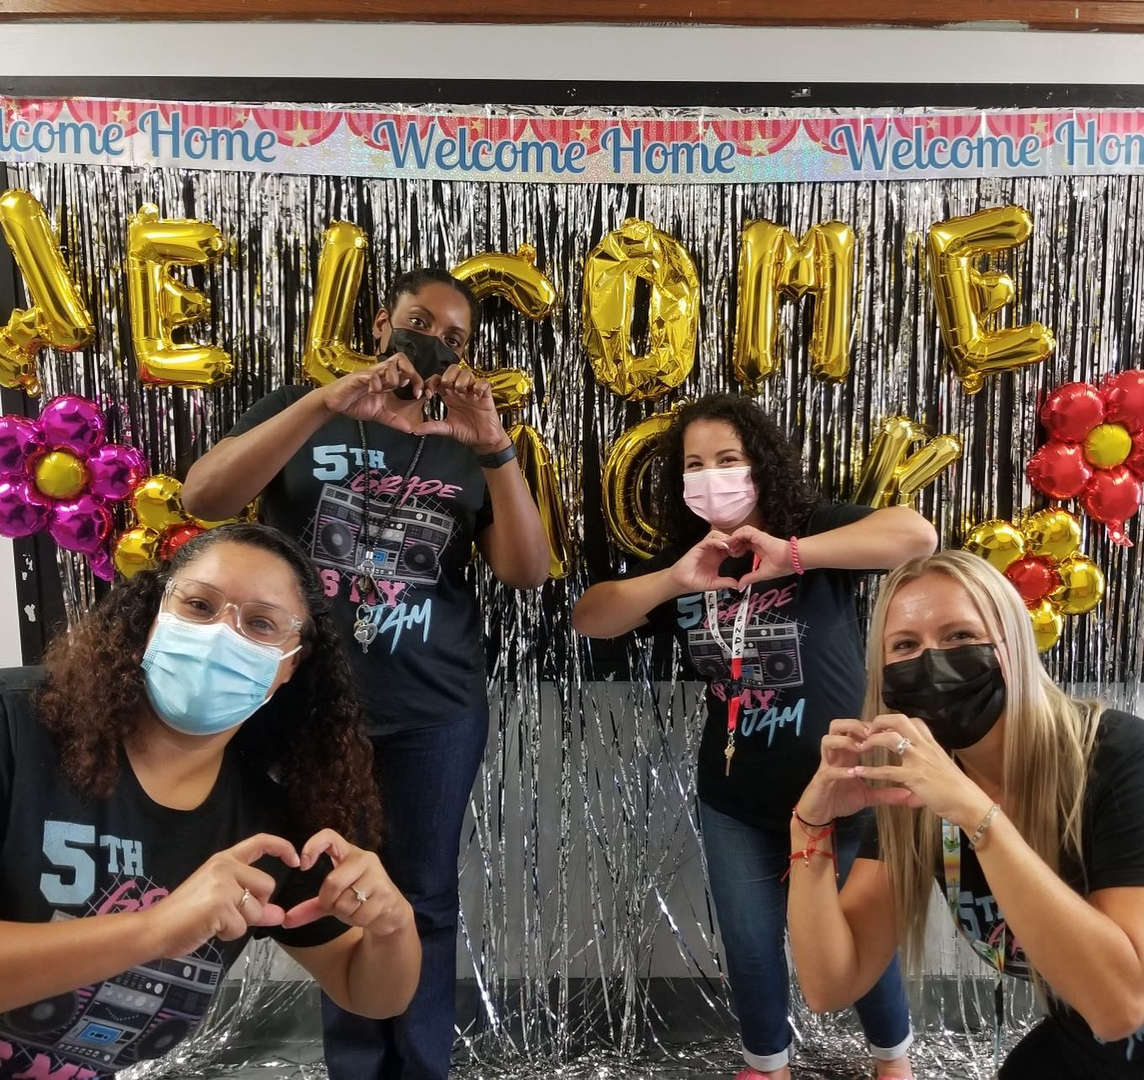 Teachers standing in front of a welcome back bulletin board making heart signs with their hands.